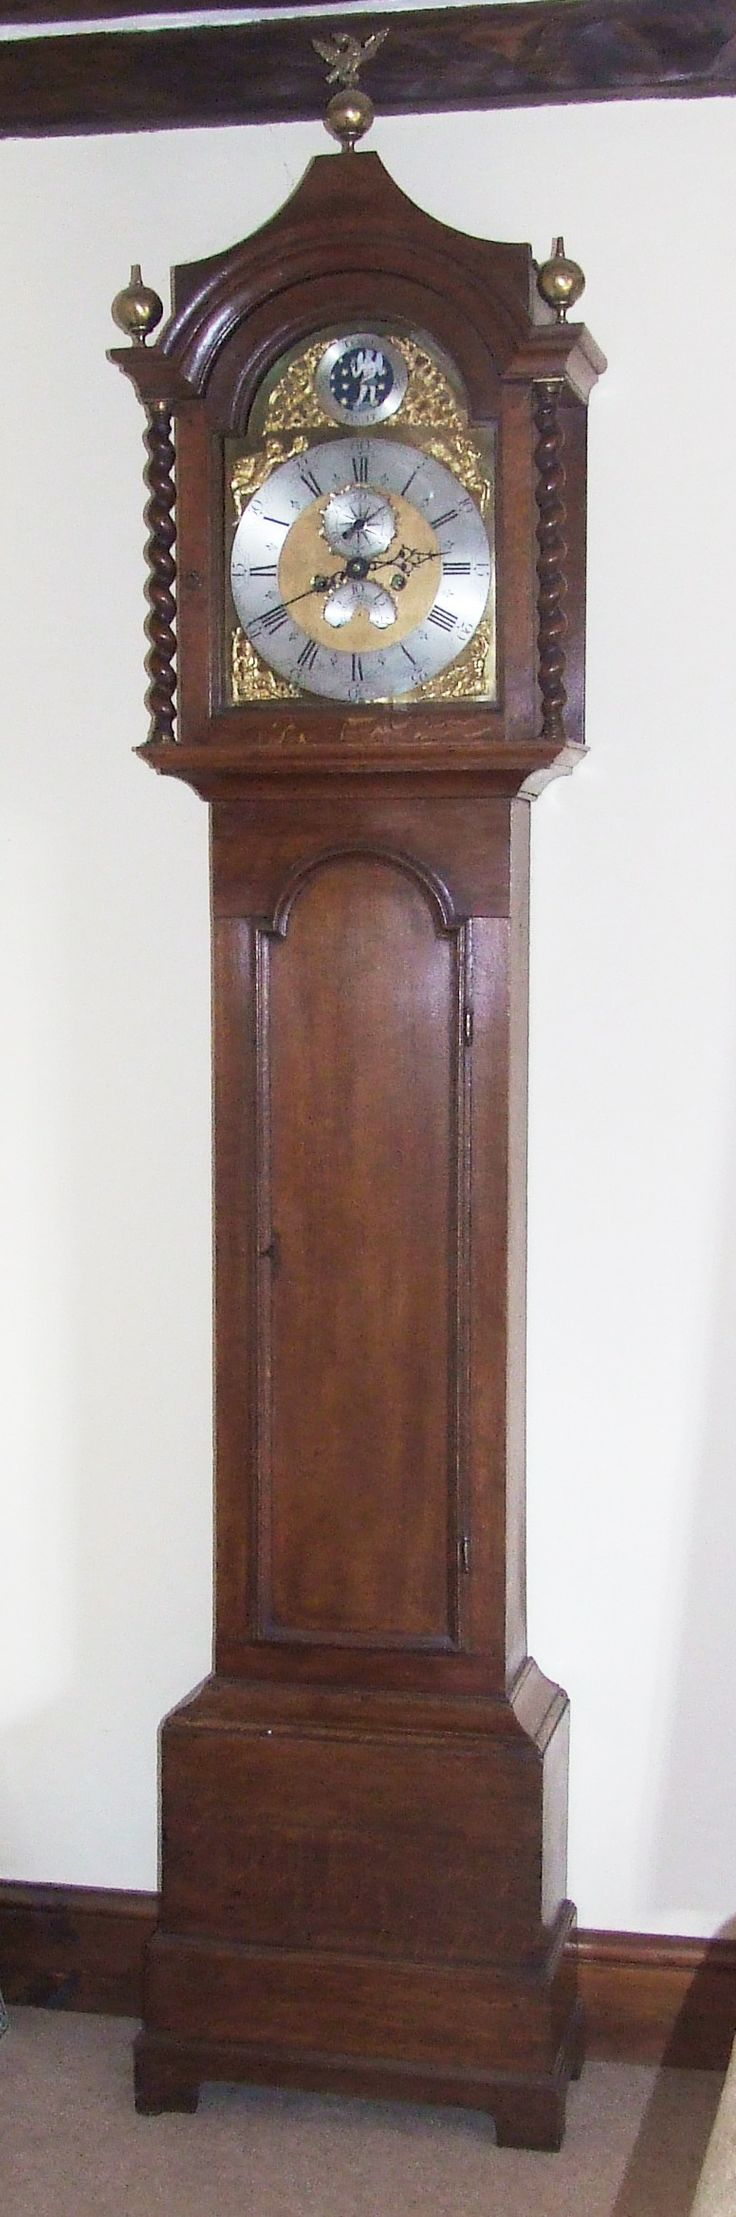 Grandfather clock case for sale woodworking projects plans - Grandfather clock blueprints ...